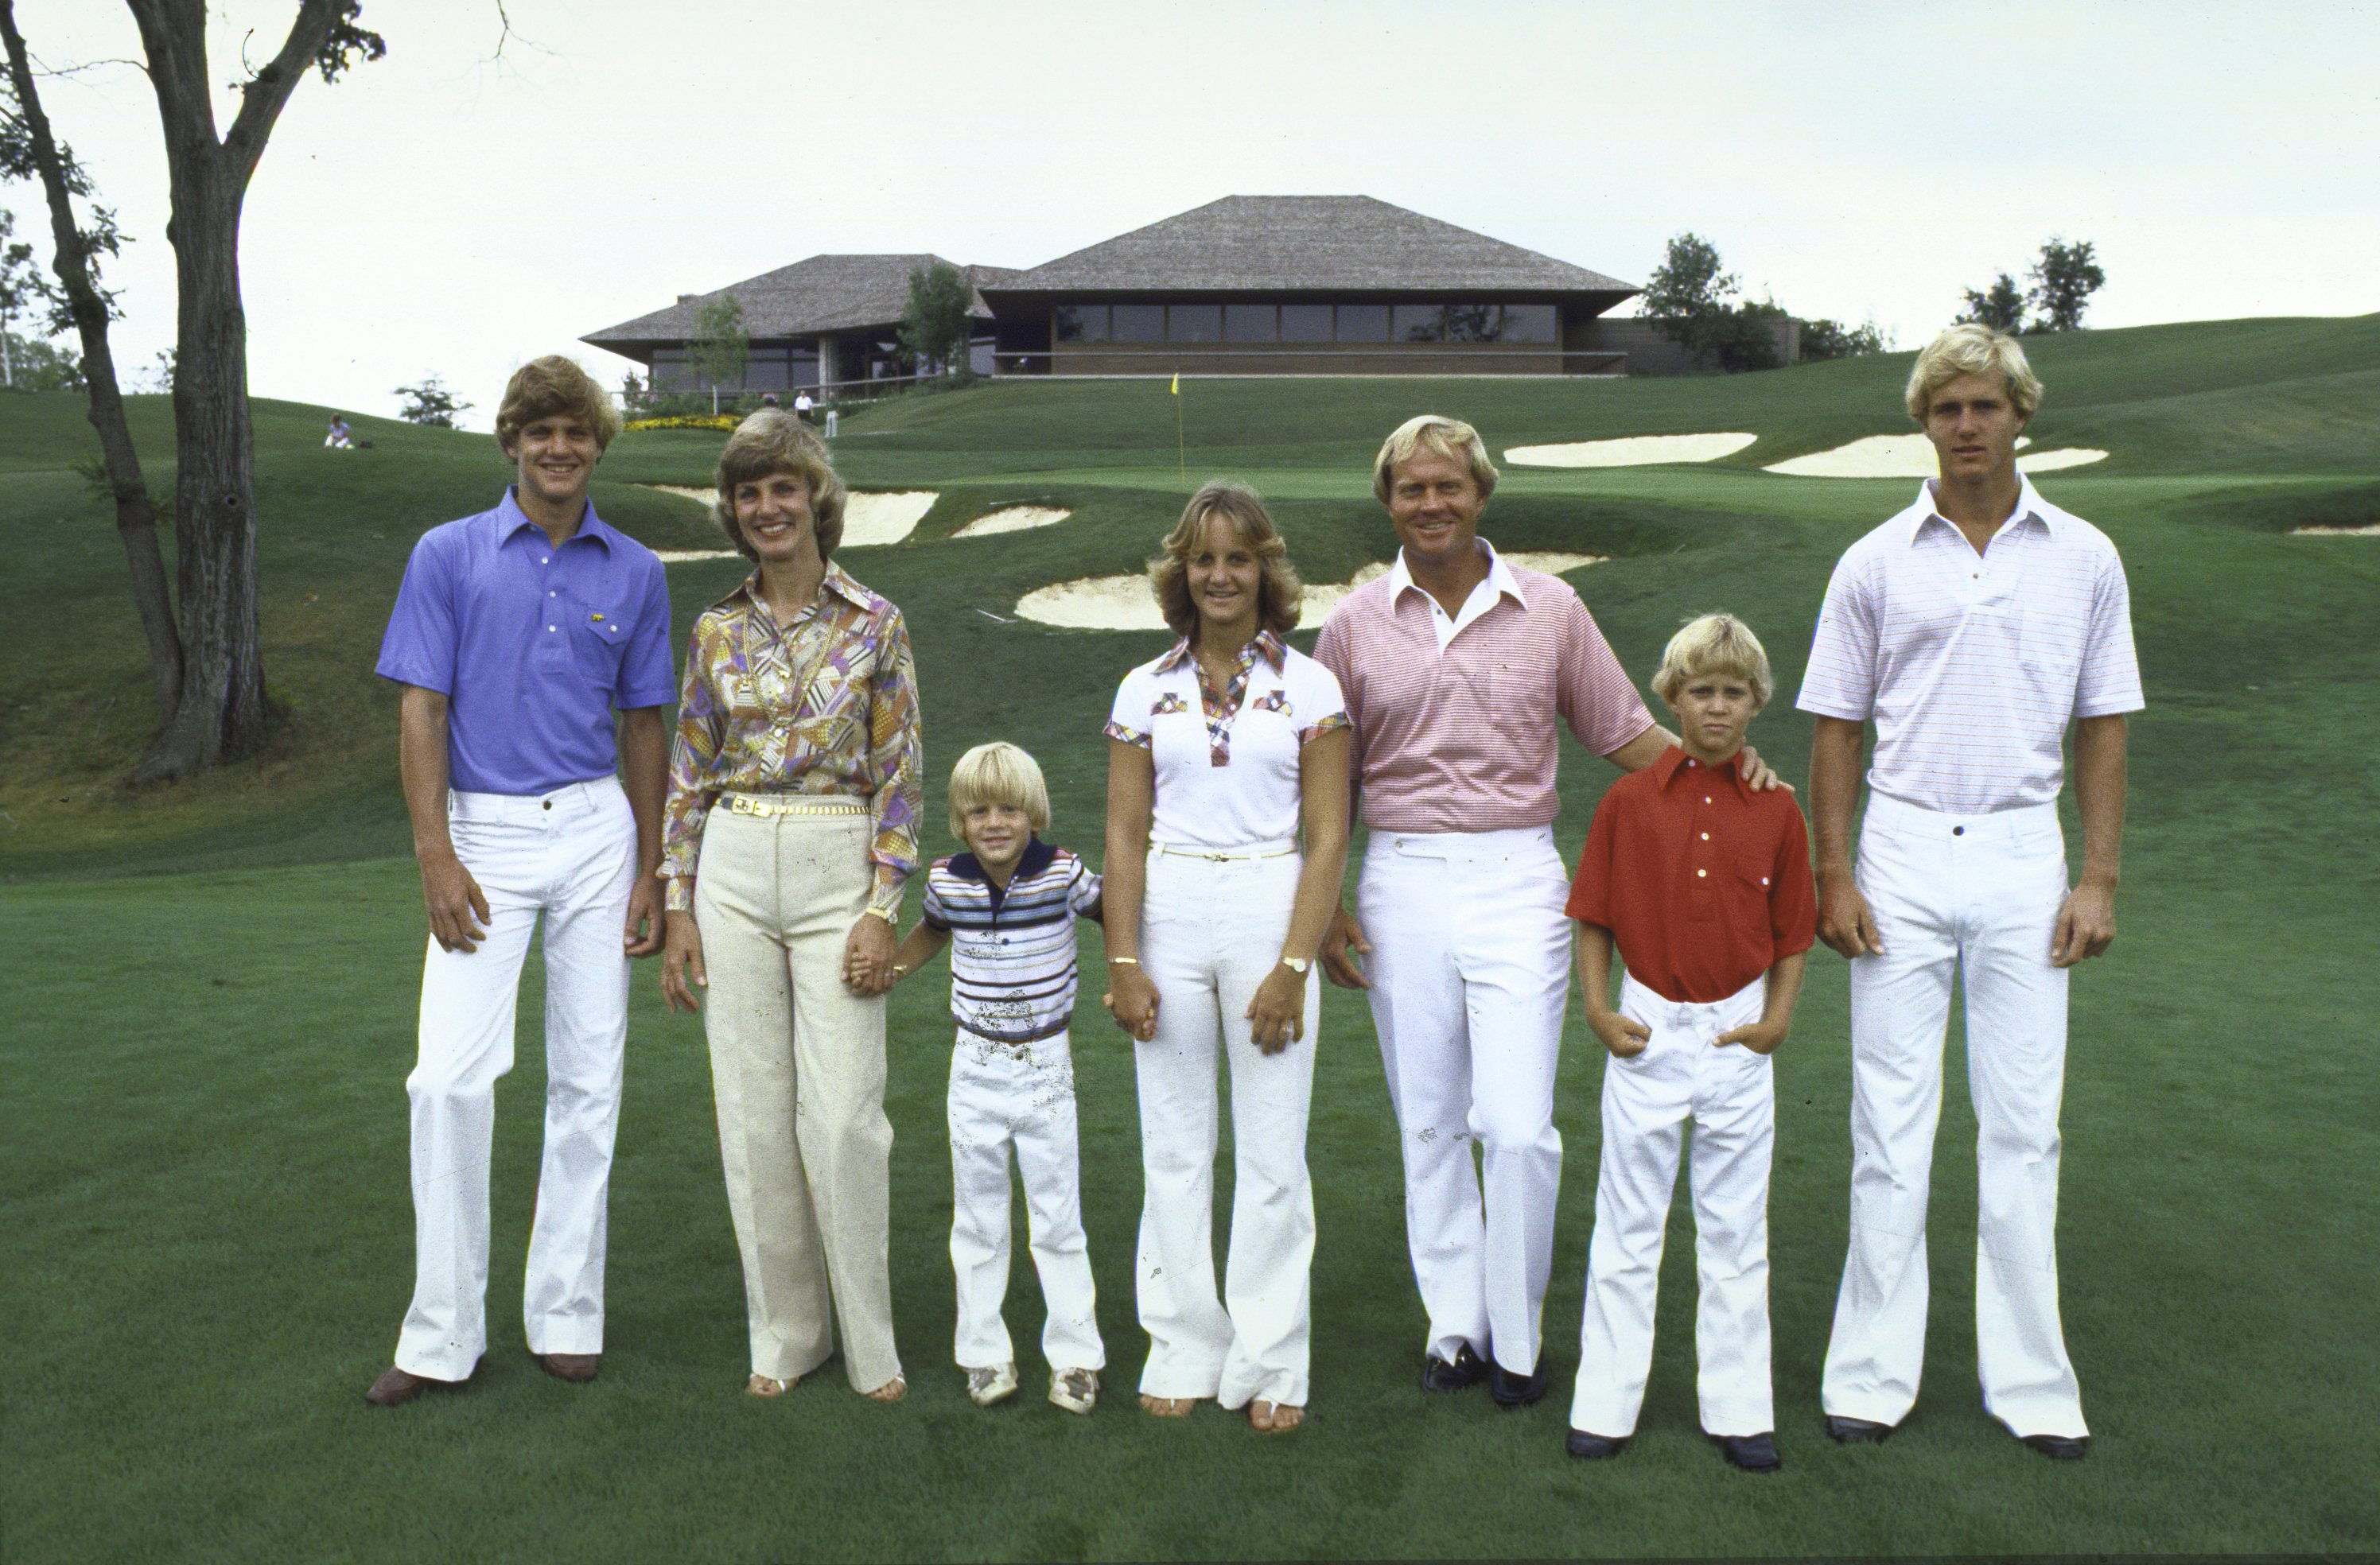 Jack Nicklaus w. family (L-R) Steve, wife Barbara, Michael, Nan, Gary and Jackie in 1978